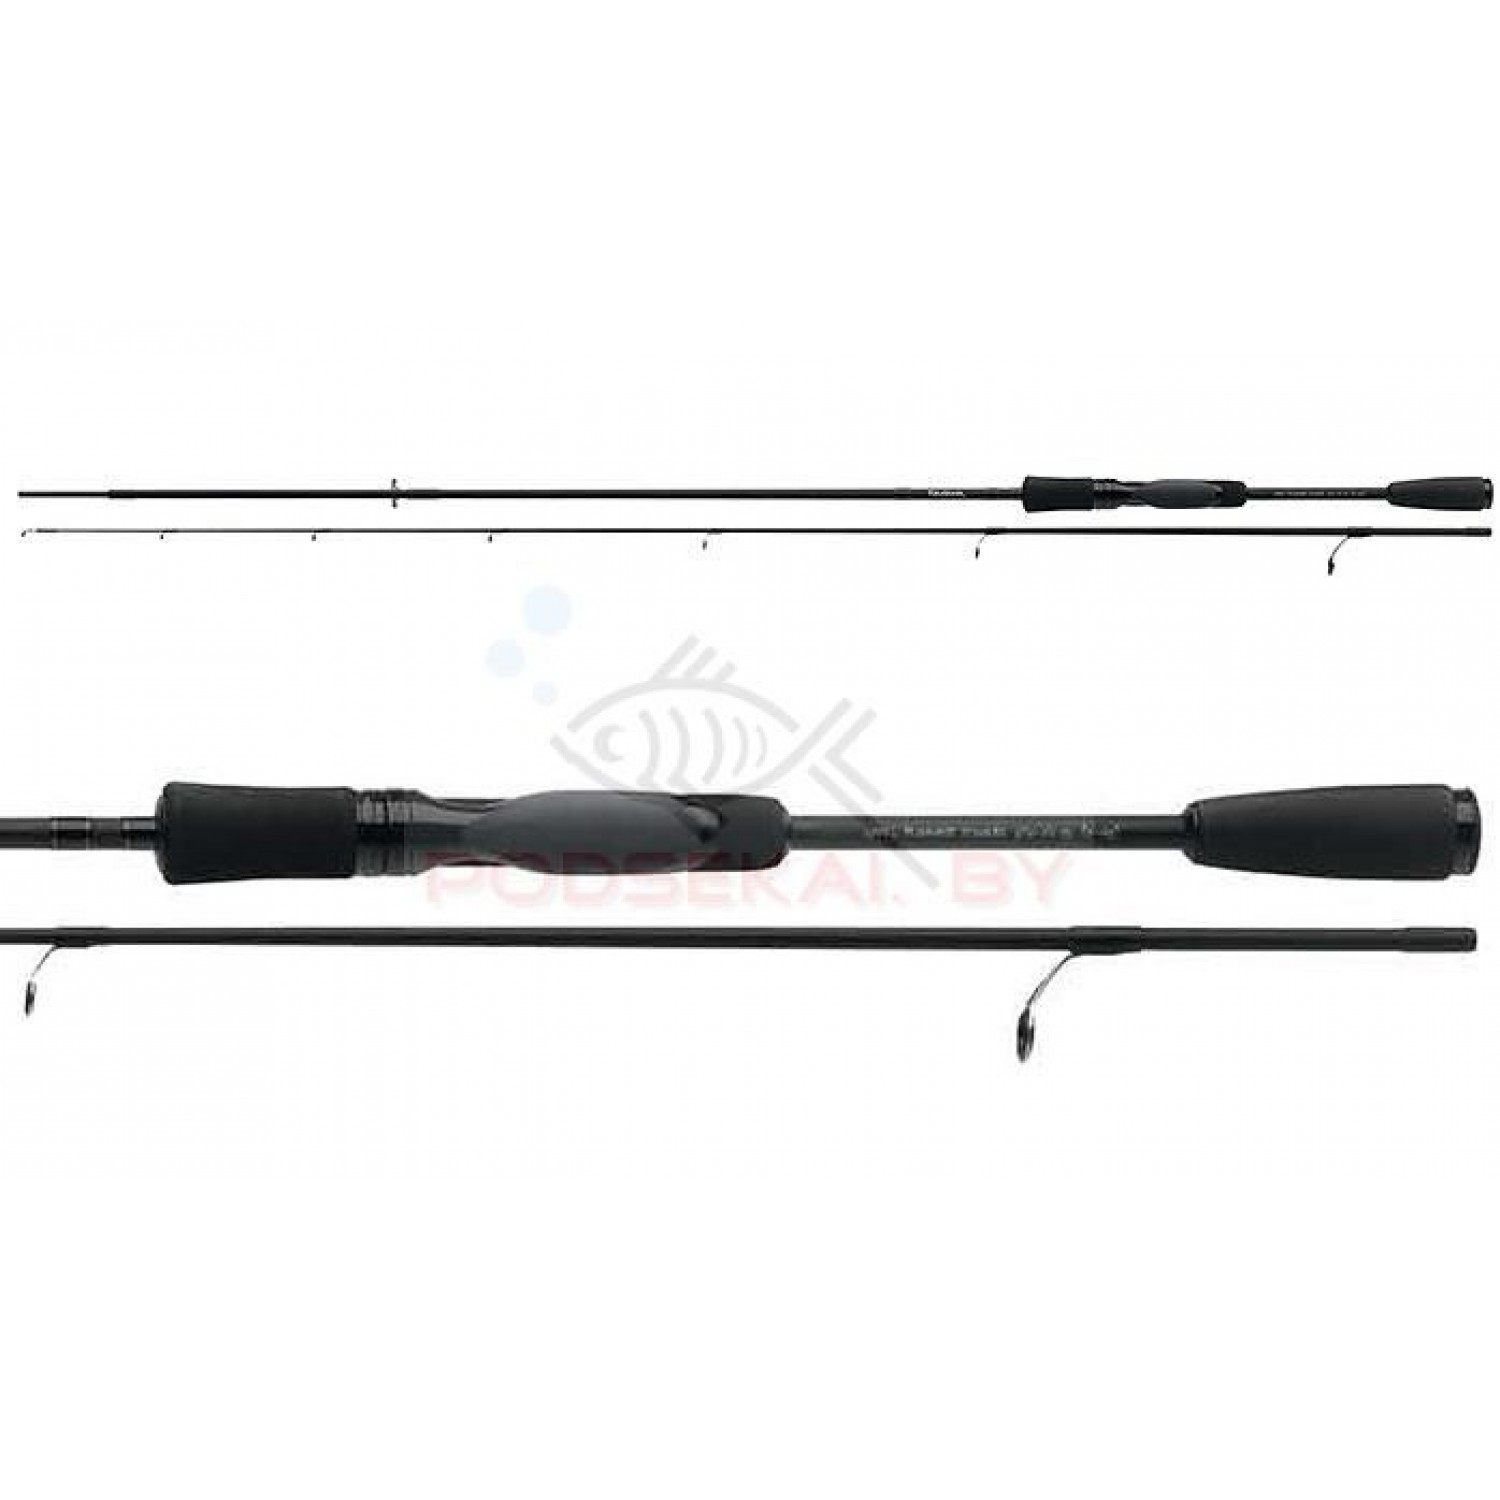 Спиннинг DAIWA Generation Black Twichin Stick D661MHFB-AD 1,98м. 7-28 гр.